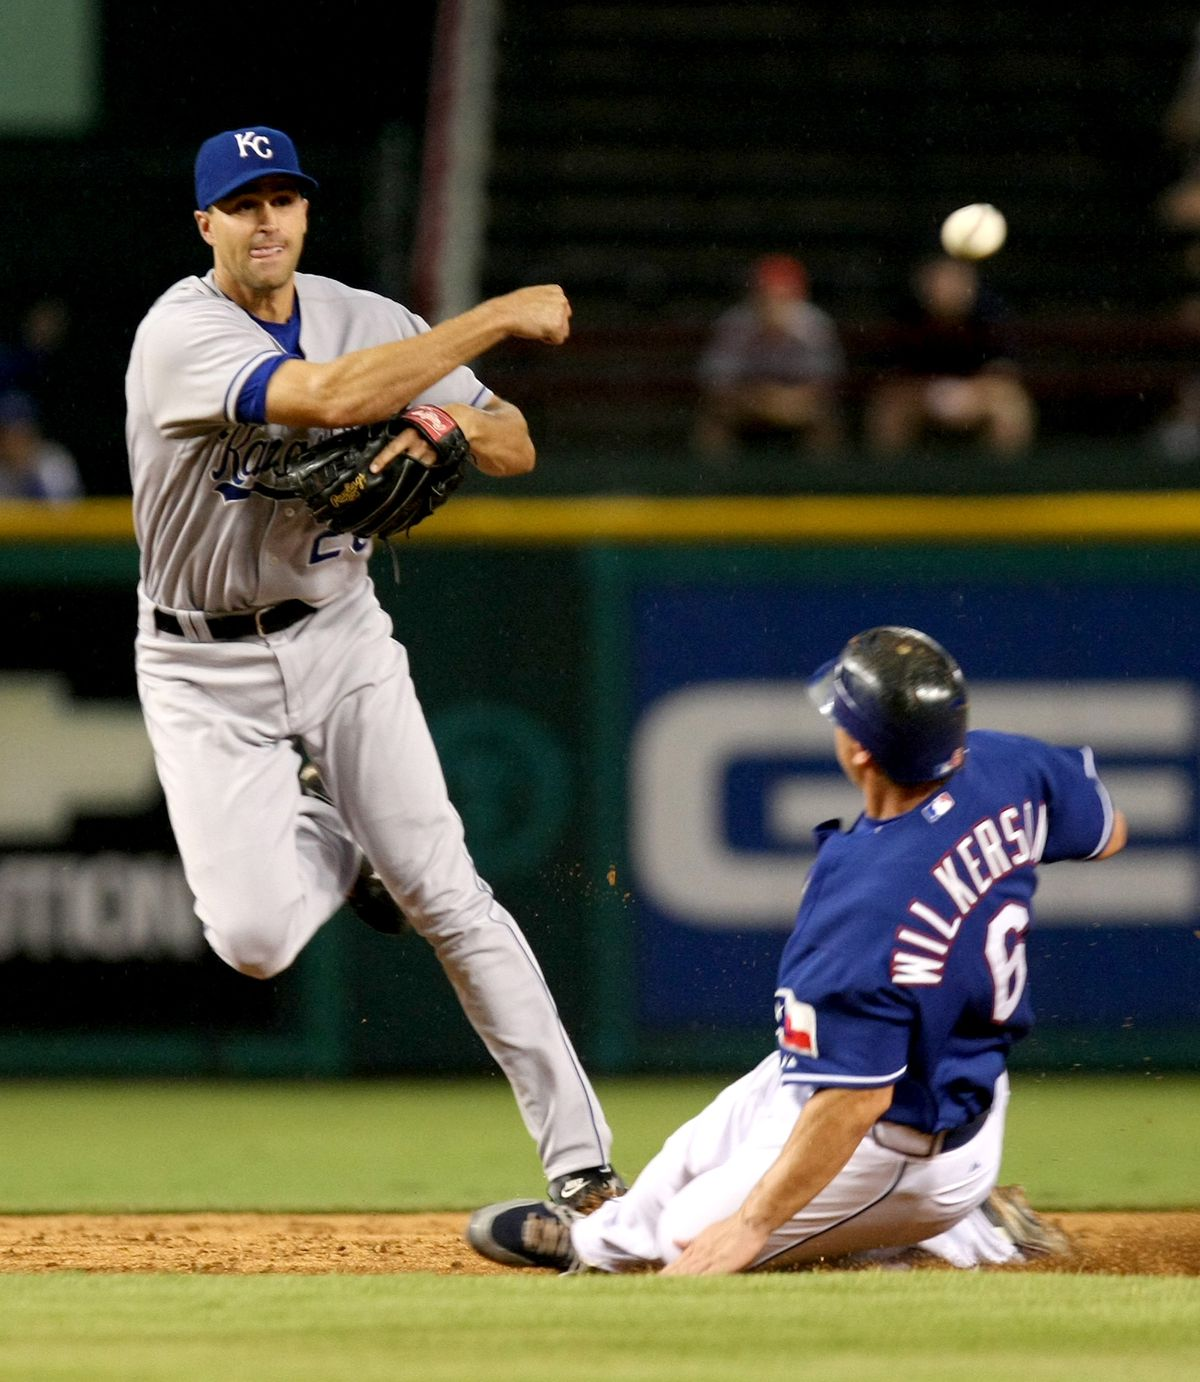 Kansas City Royals' Jason Smith tags out Texas Rangers' Brad Wilkerson and throws to first for an attempted double play in the third inning at Rangers Ballpark in Arlington, Texas, Tuesday, September 4, 2007.